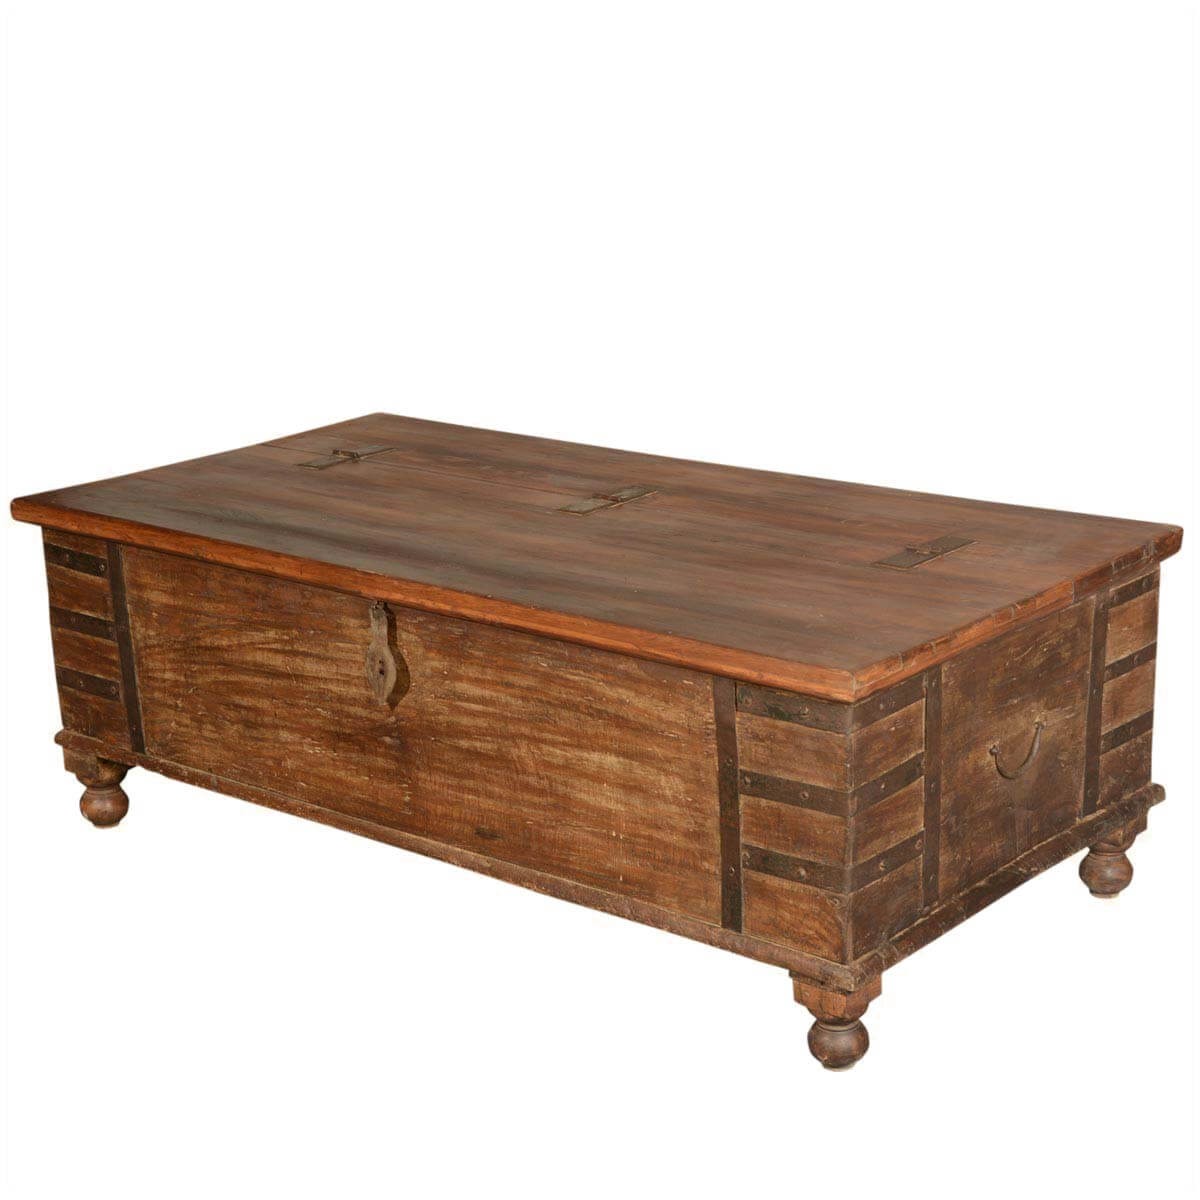 Rustic reclaimed wood standing coffee table chest for Reclaimed coffee table